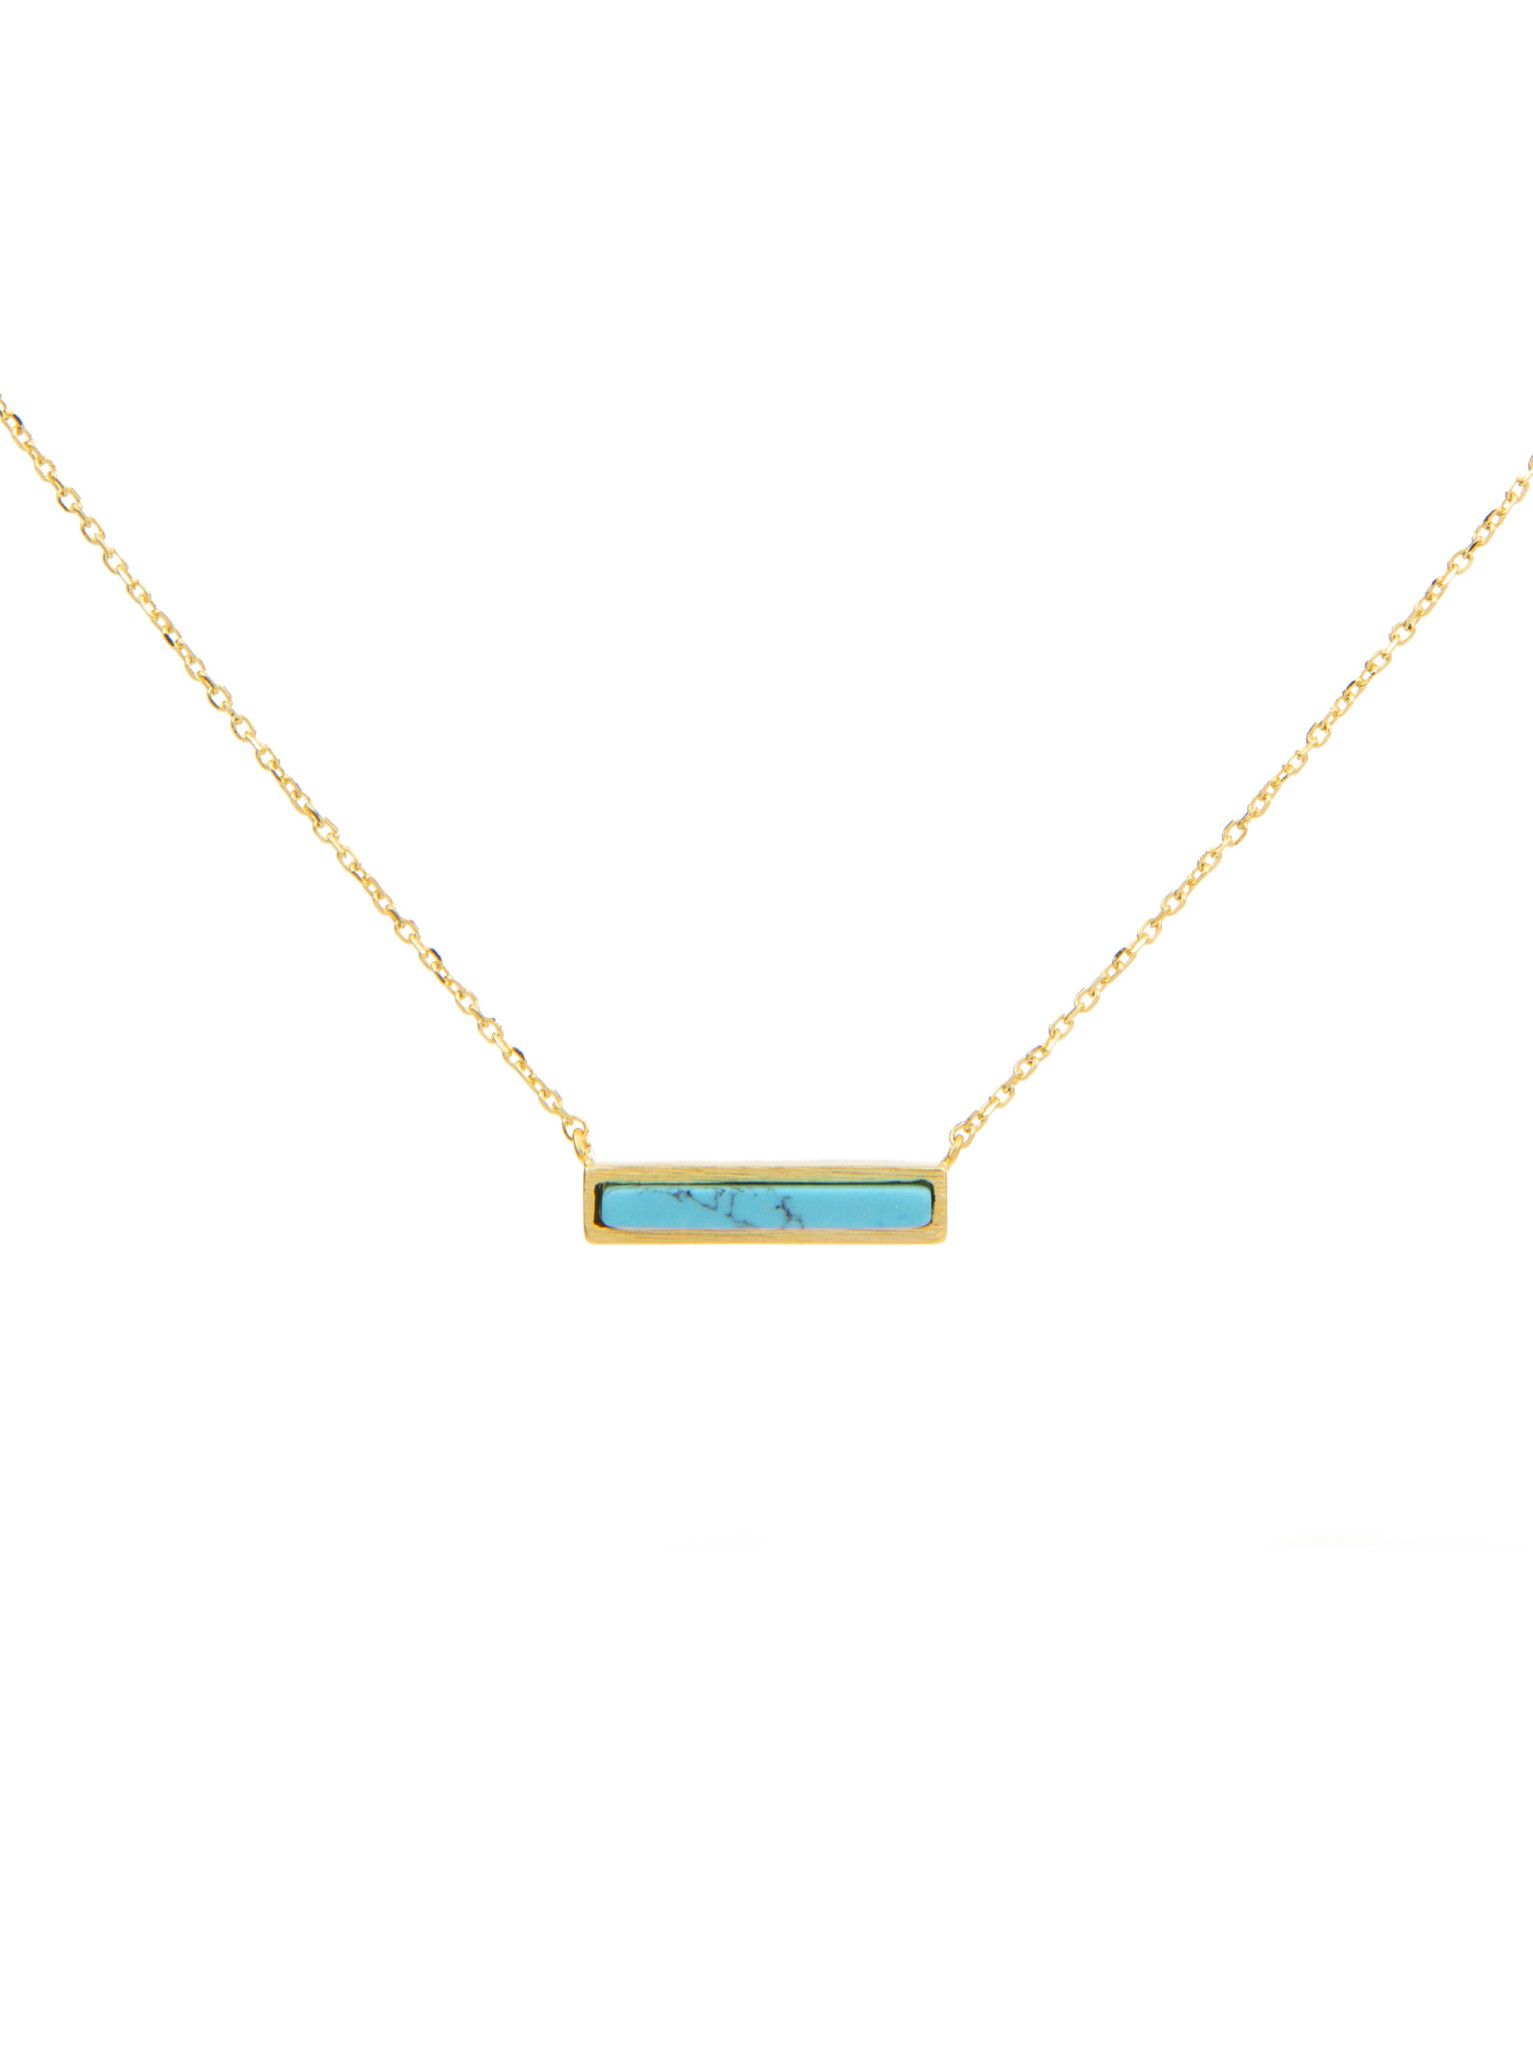 Frances Boutique Phoenix Arizona Souvenirs Turquoise Bar Necklace